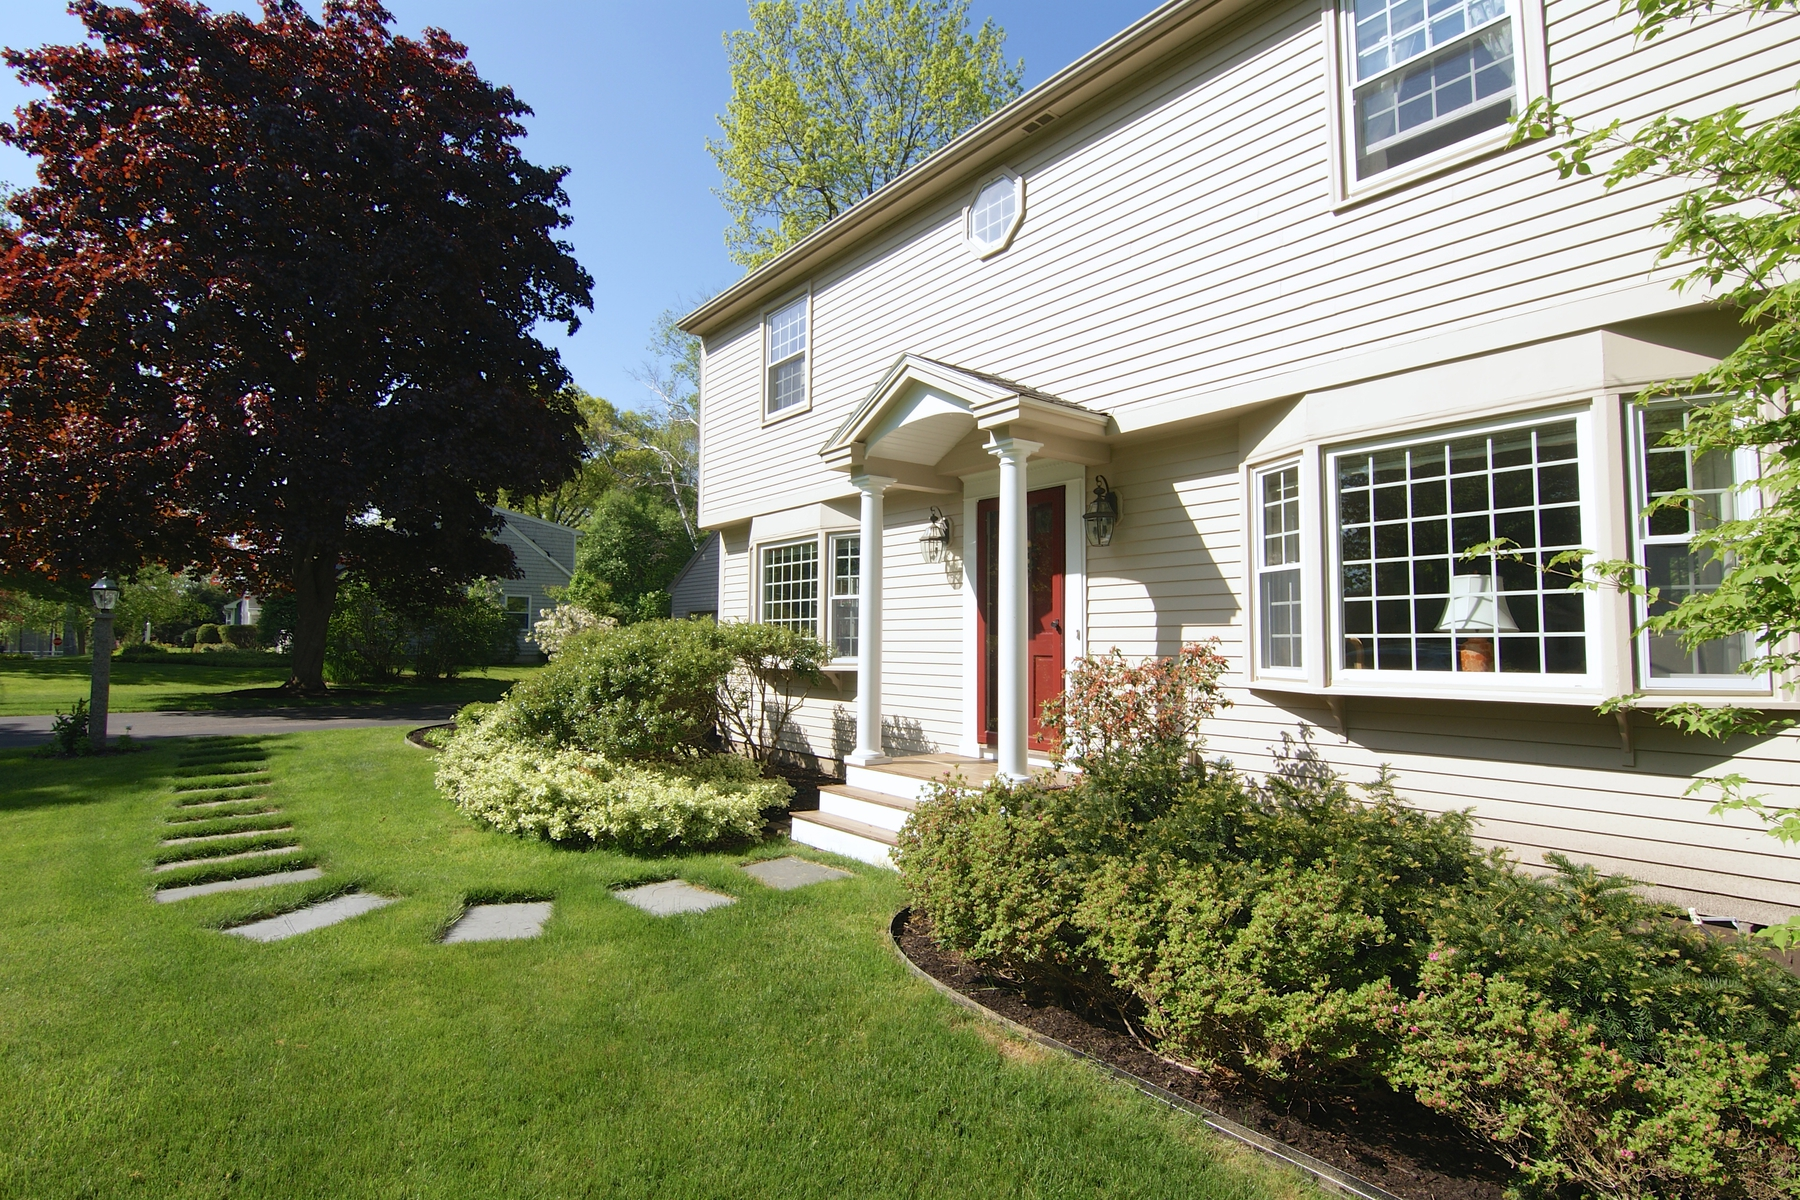 Single Family Home for Sale at Ideal Seacoast Location 71 Harborview Drive Rye, New Hampshire 03870 United States